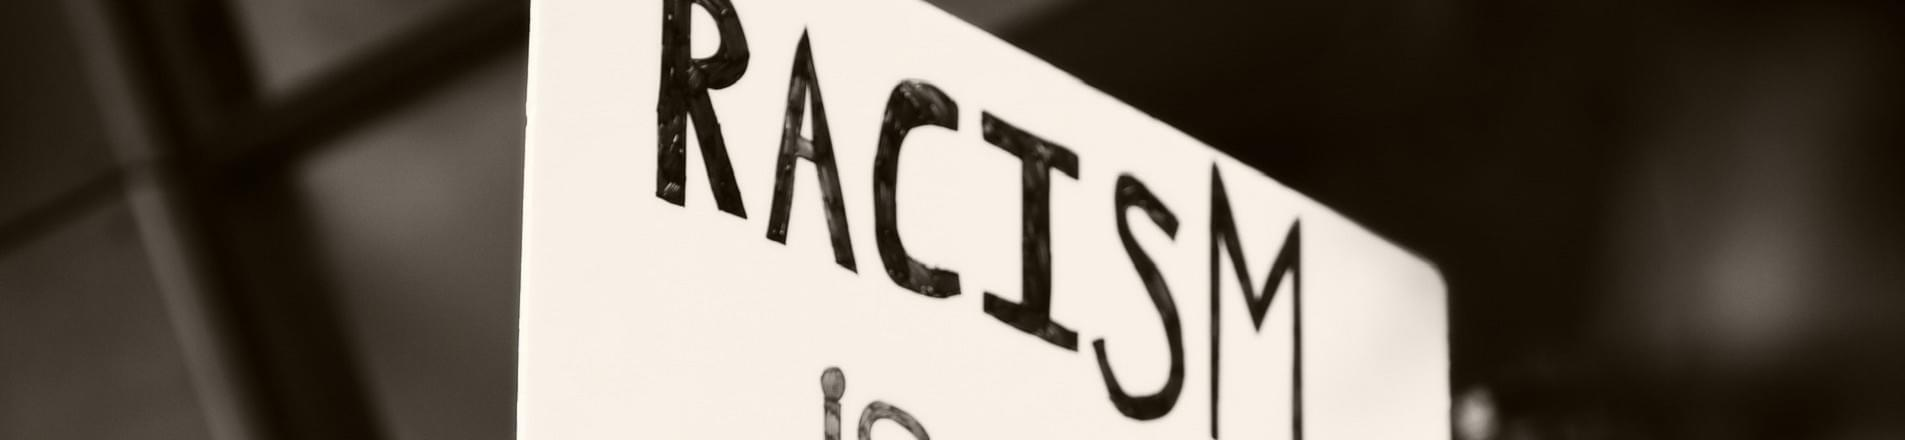 Defeat Racism: Not on the Macro Level but the Micro Level